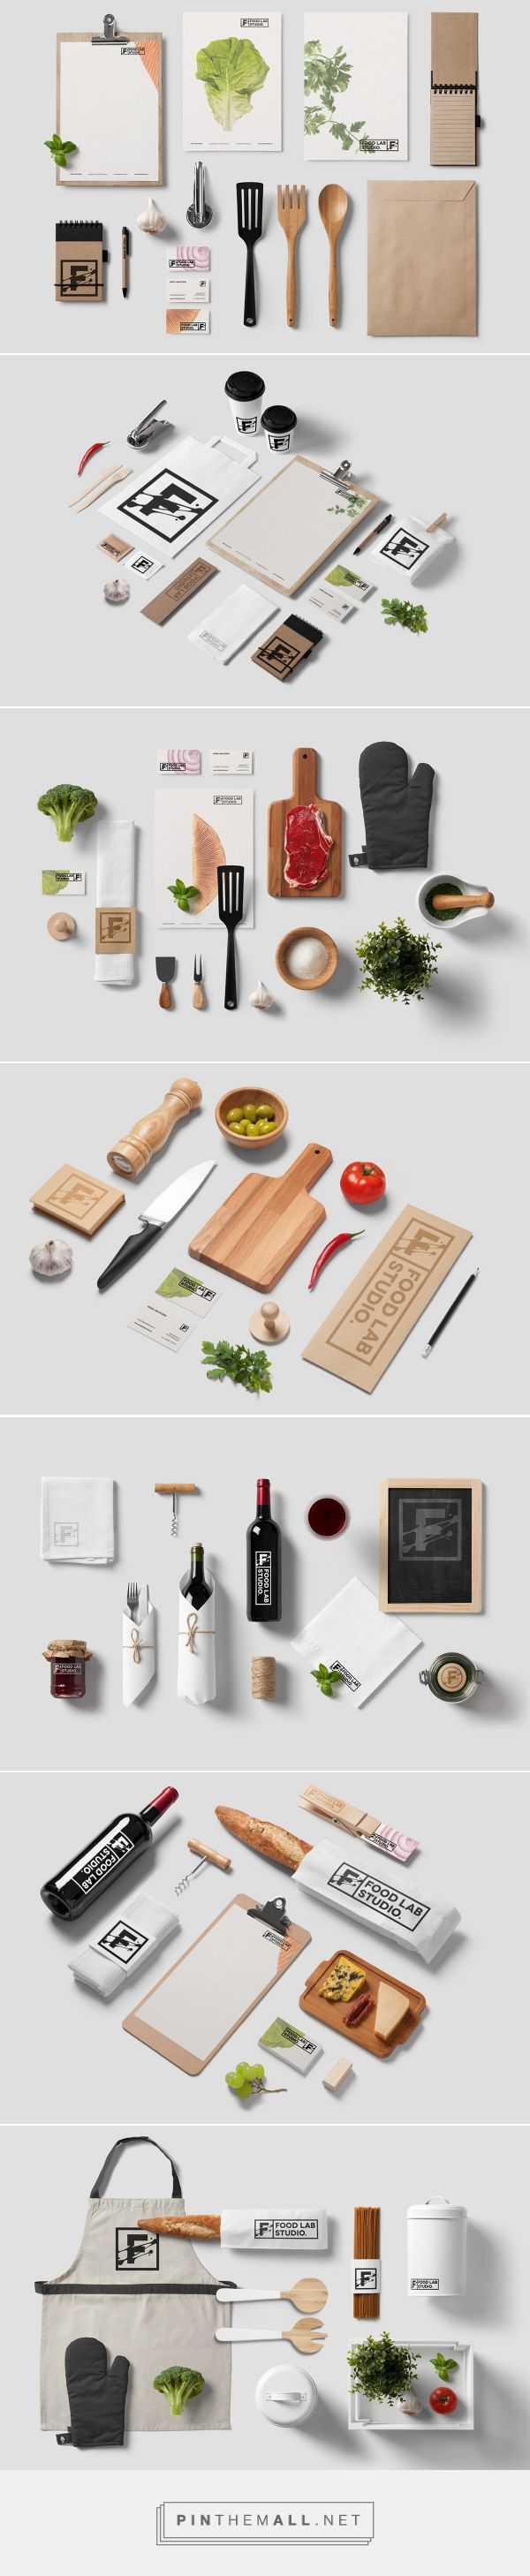 FOOD LAB STUDIO on Behance by LΛNGE & LΛNGE, Warsaw, Poland curated by Packaging Diva PD. ID & Interior design for gastronomy & culinary multifunctional space with professional culinary facilities prepared and designed for organizing events with food and packaging in the lead role.